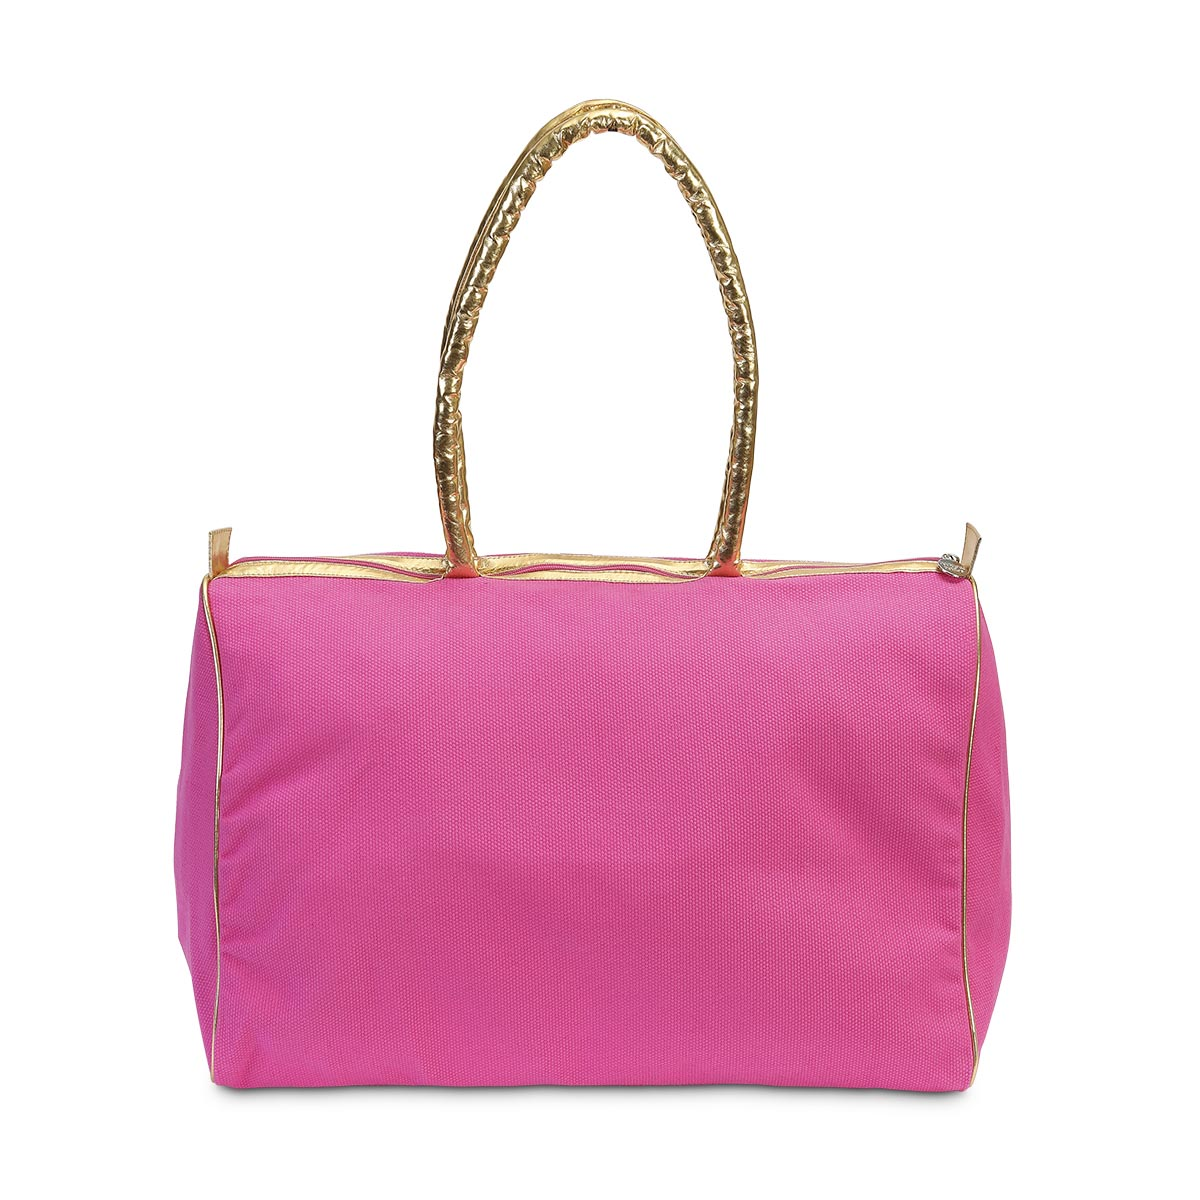 durry beach duffle pink, gold handle